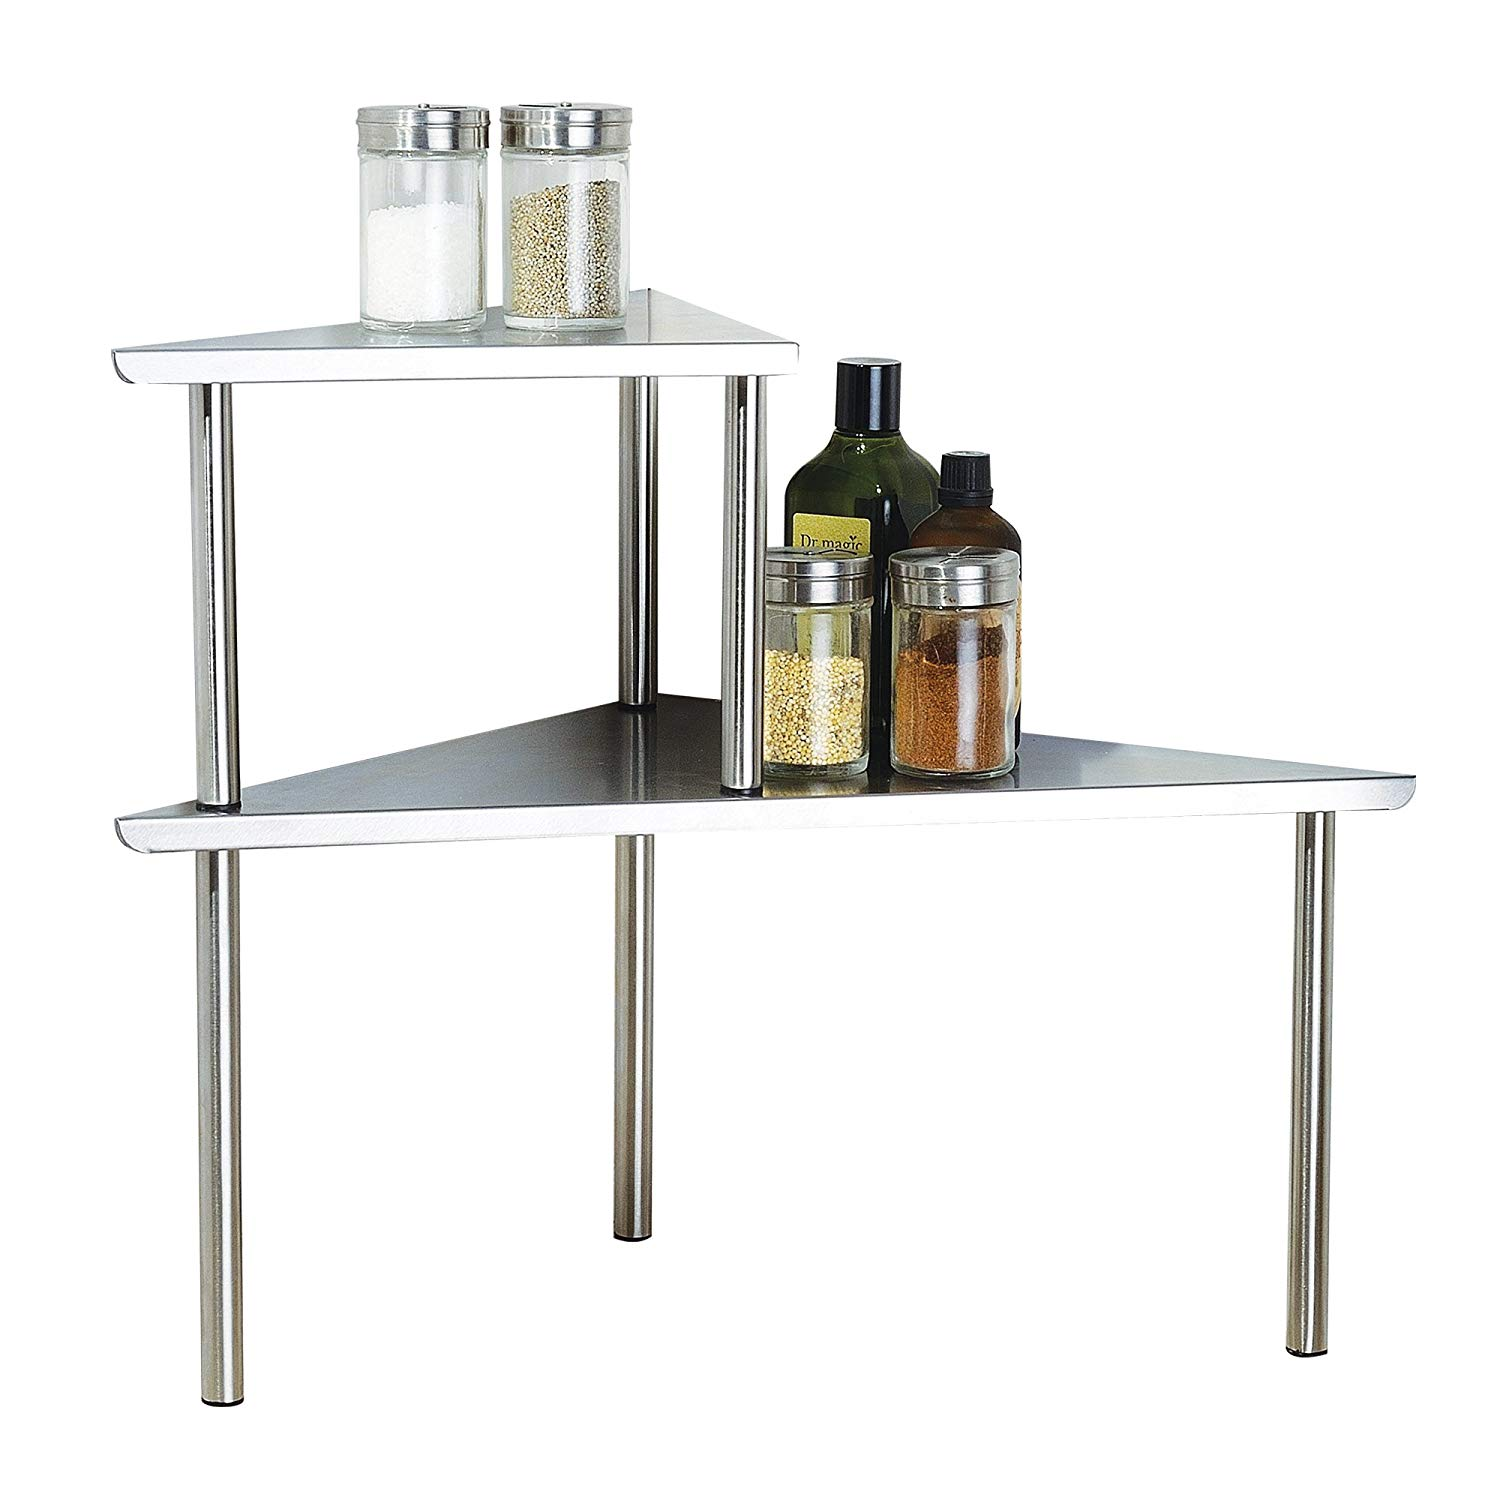 Cook N Home 2-Tier Stainless Steel Corner Storage Shelf Organizer